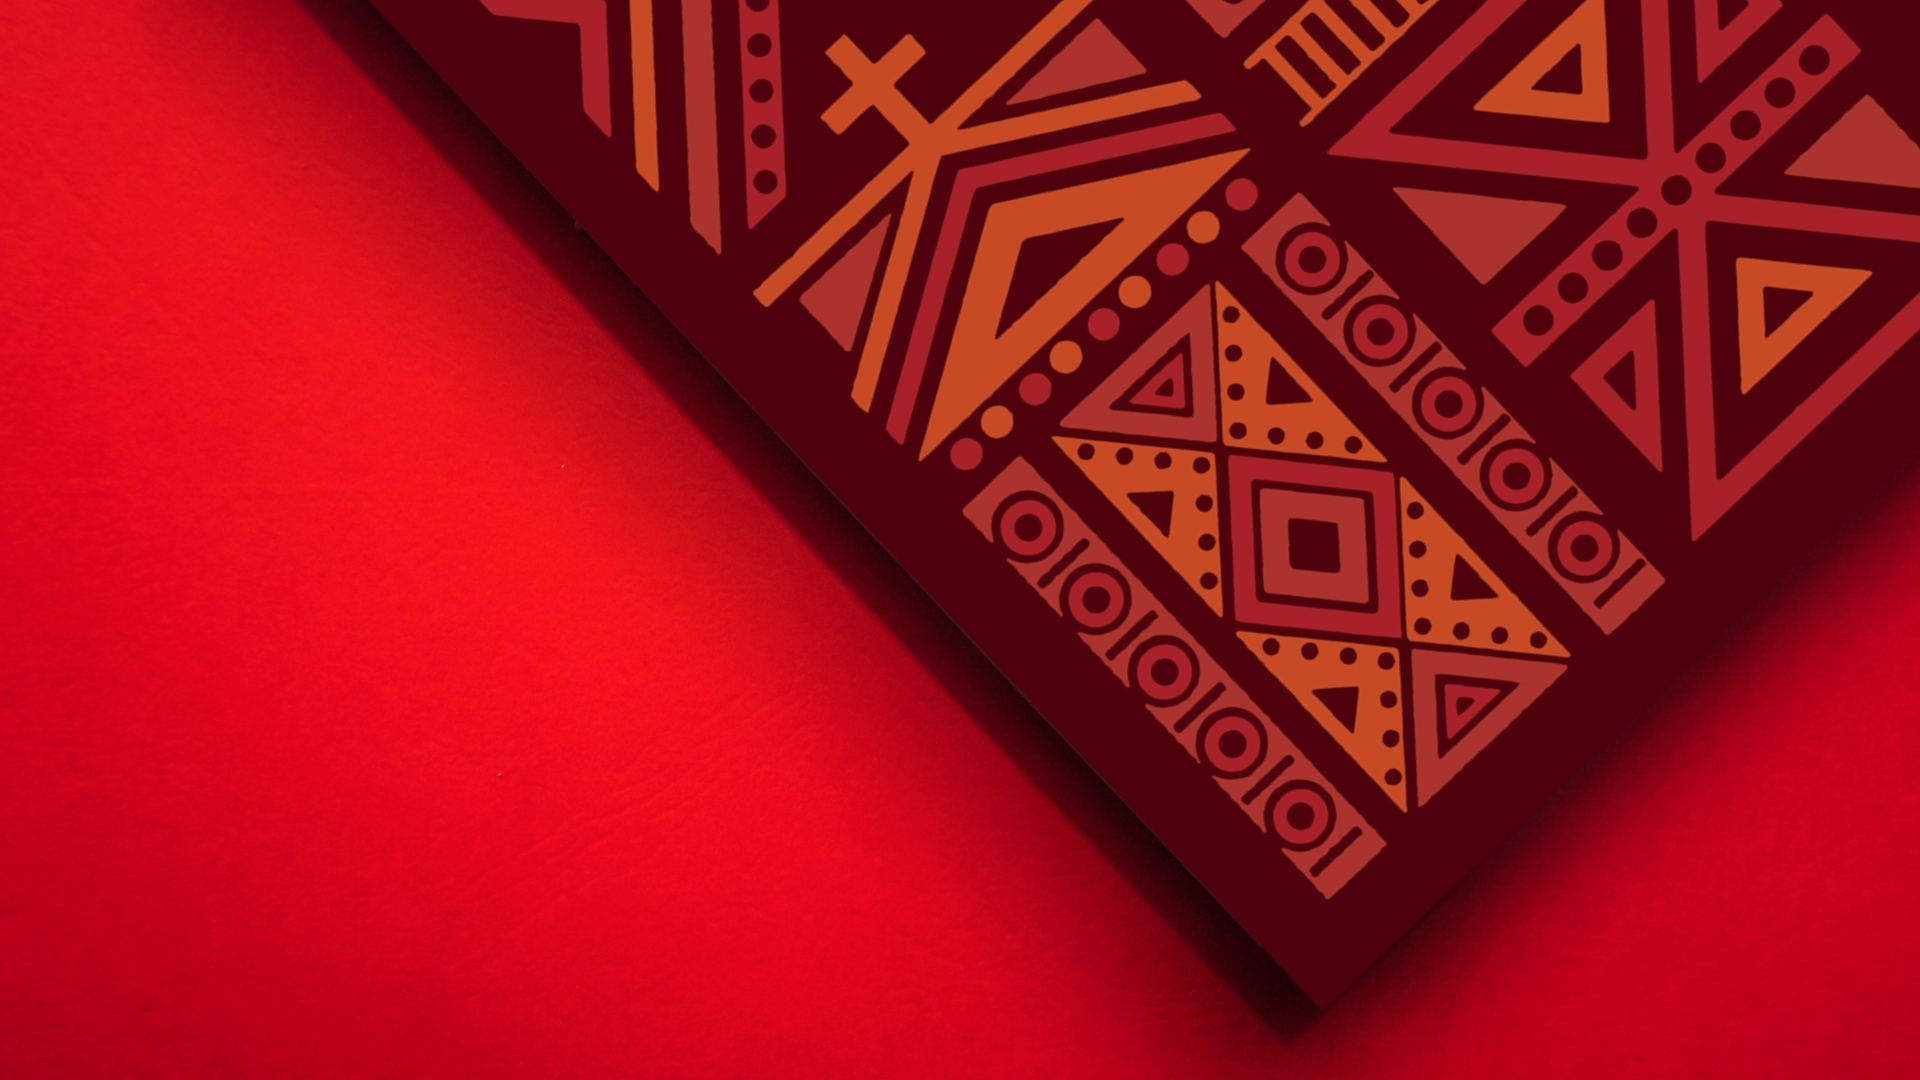 God's Design for the church book cover on red background